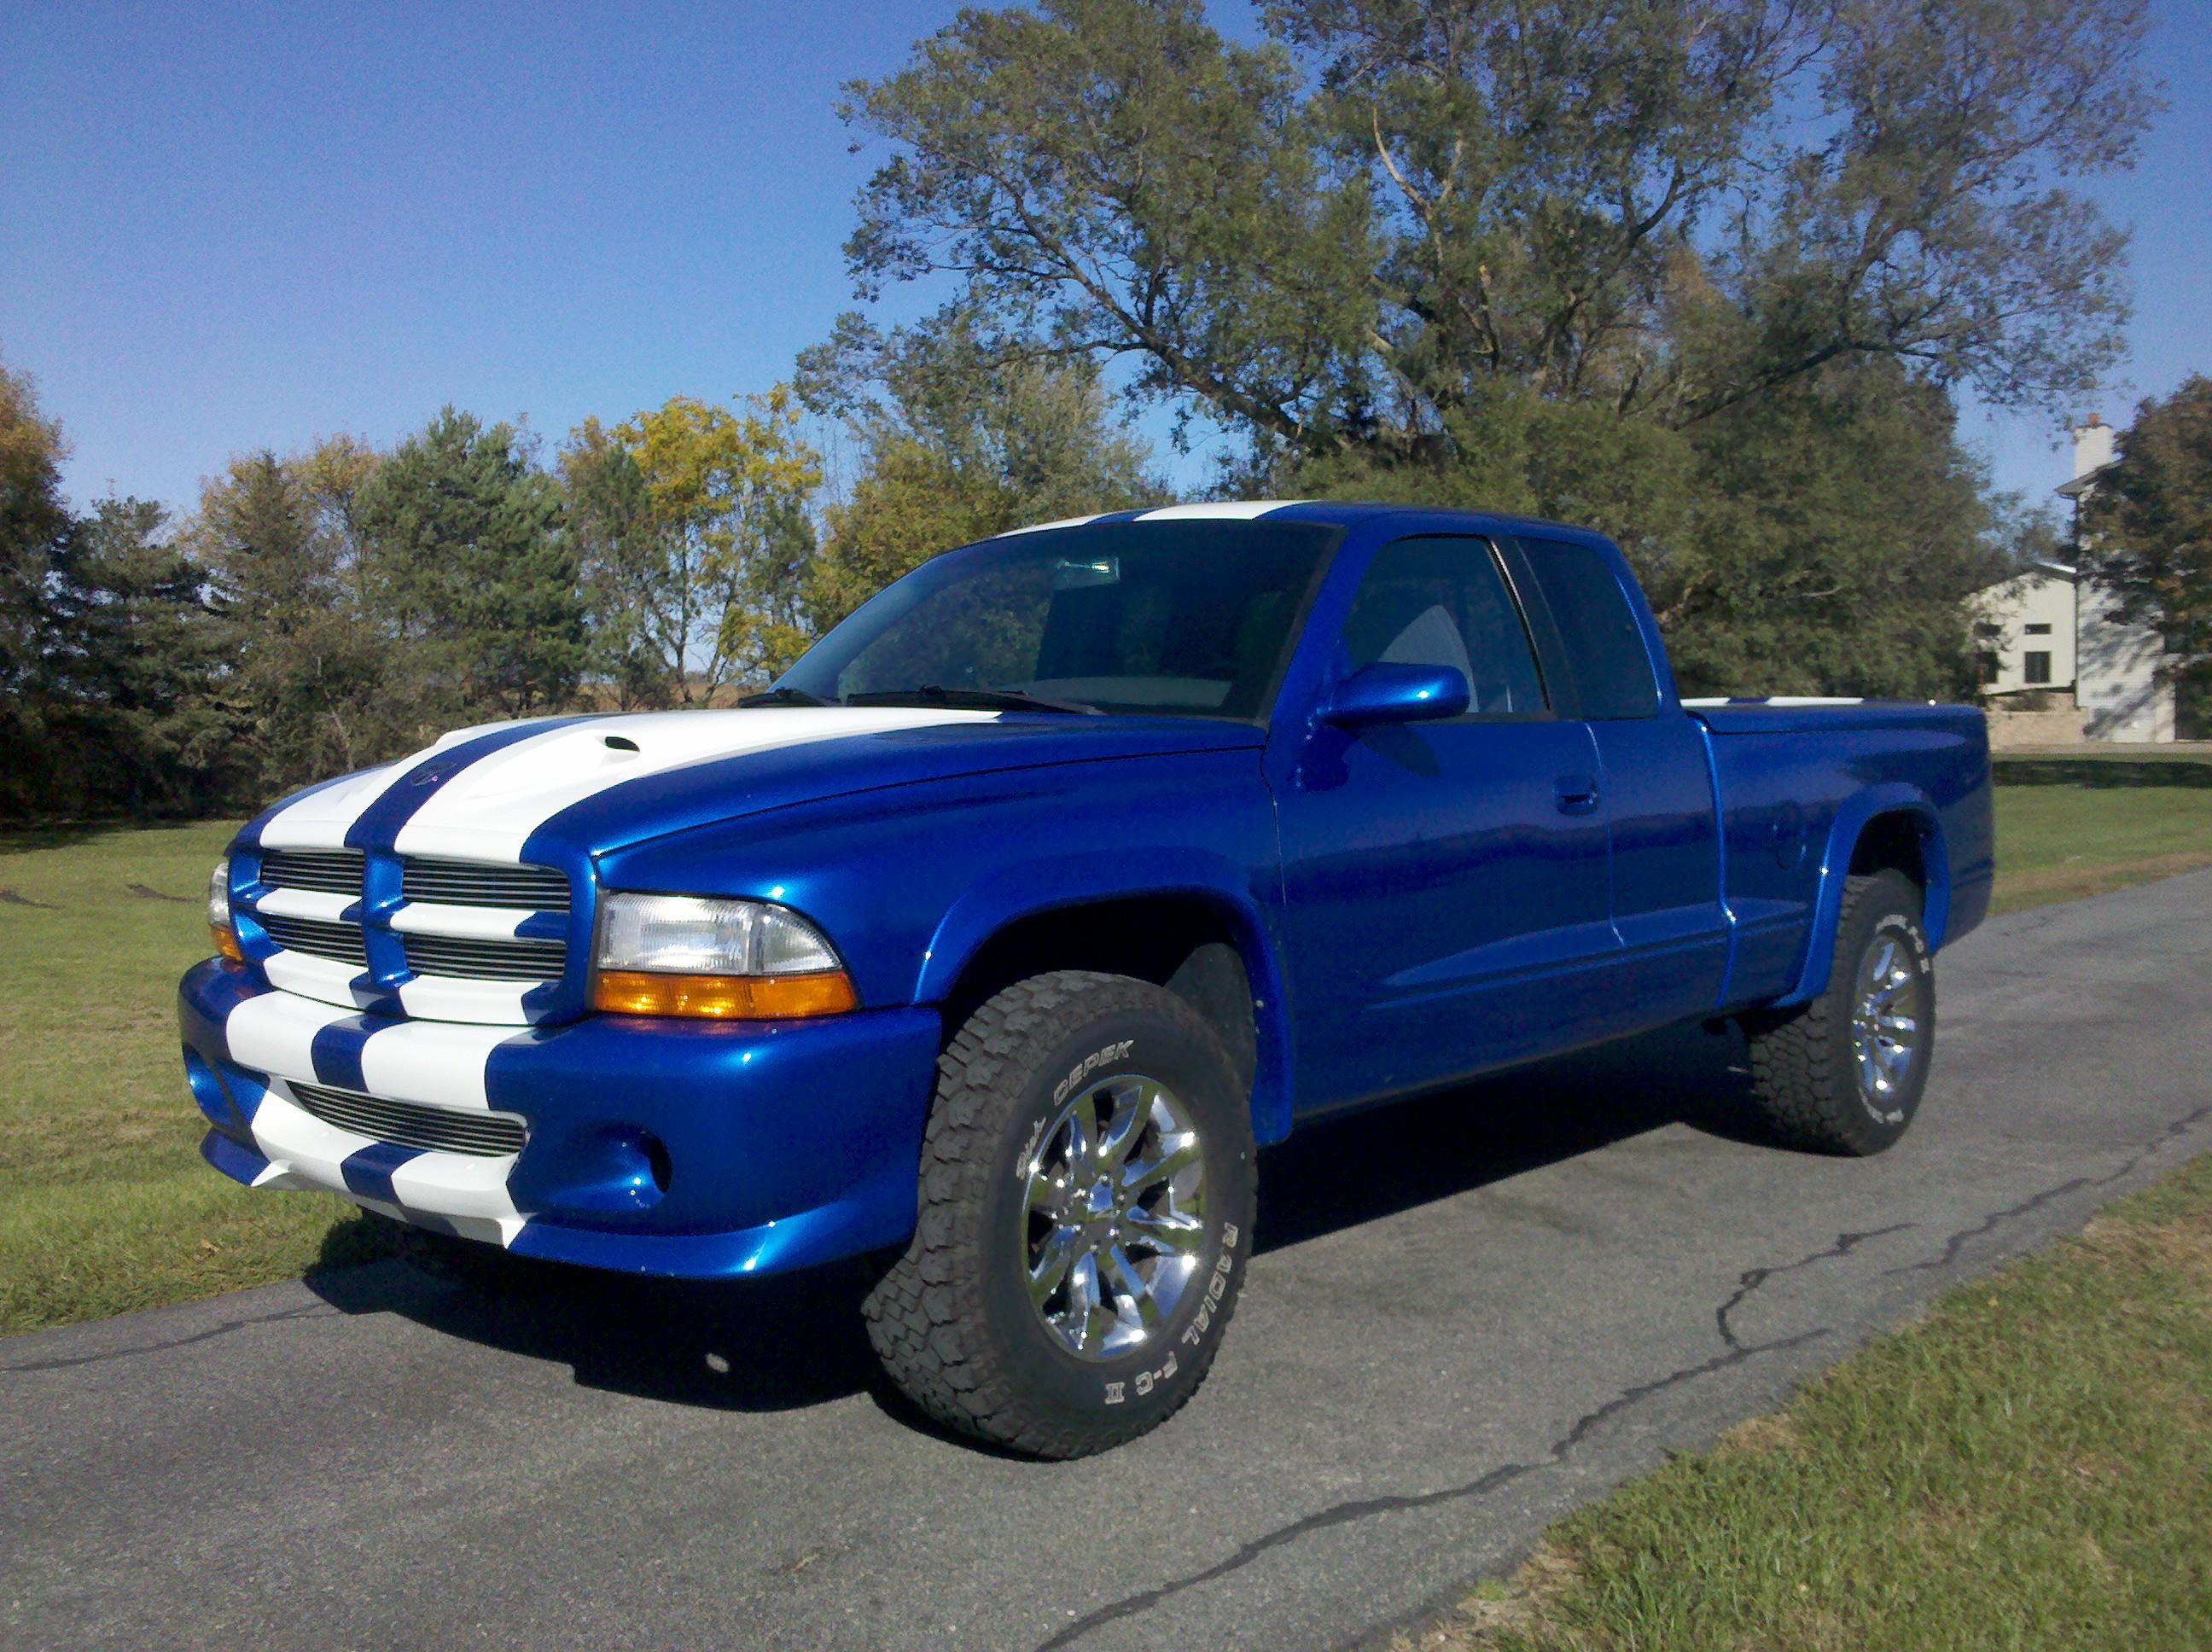 Kenny_Tho's 1997 Dodge Dakota Extended Cab